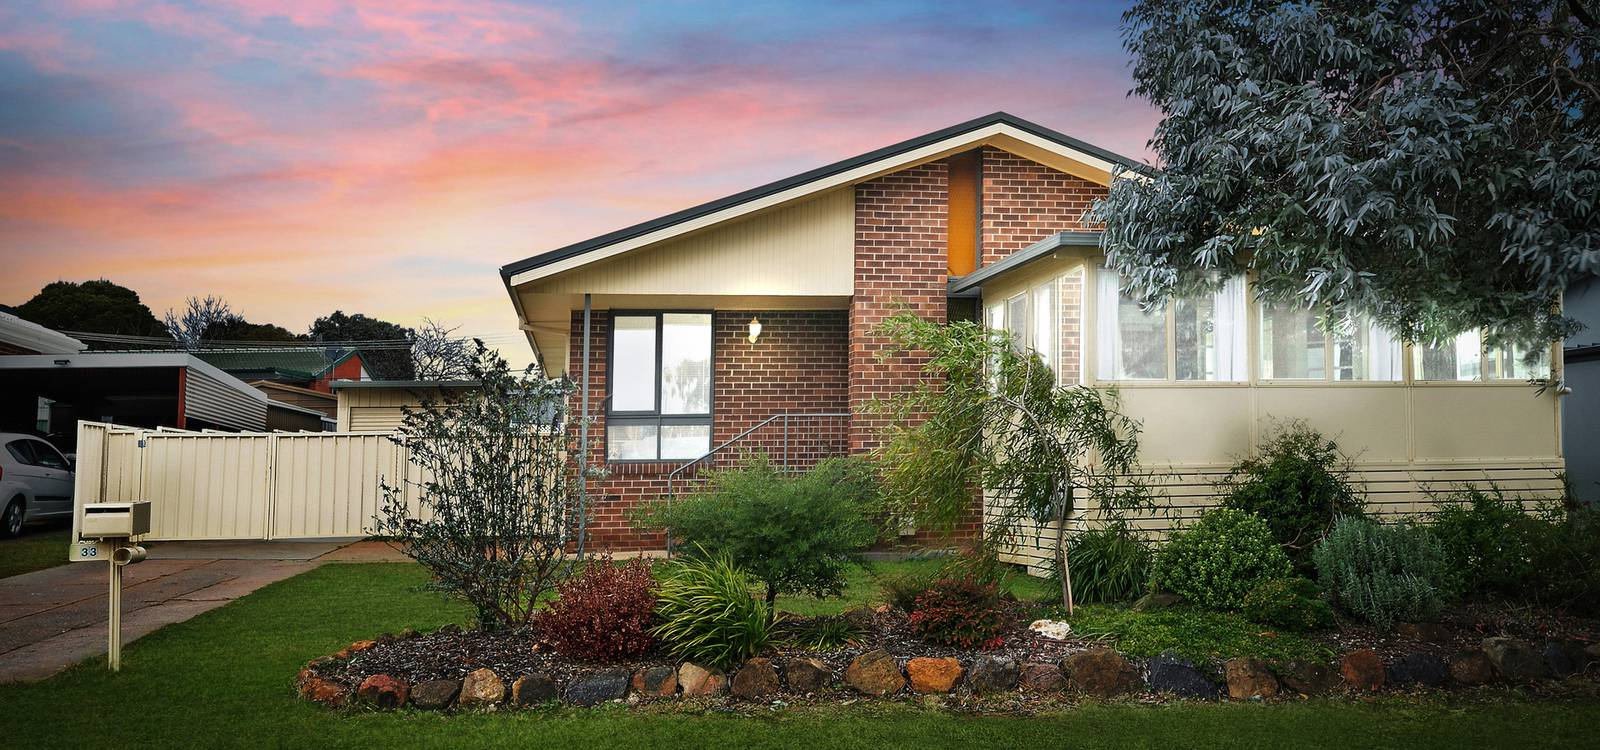 33 Griffiths Street HOLT, ACT 2615 - photo 1